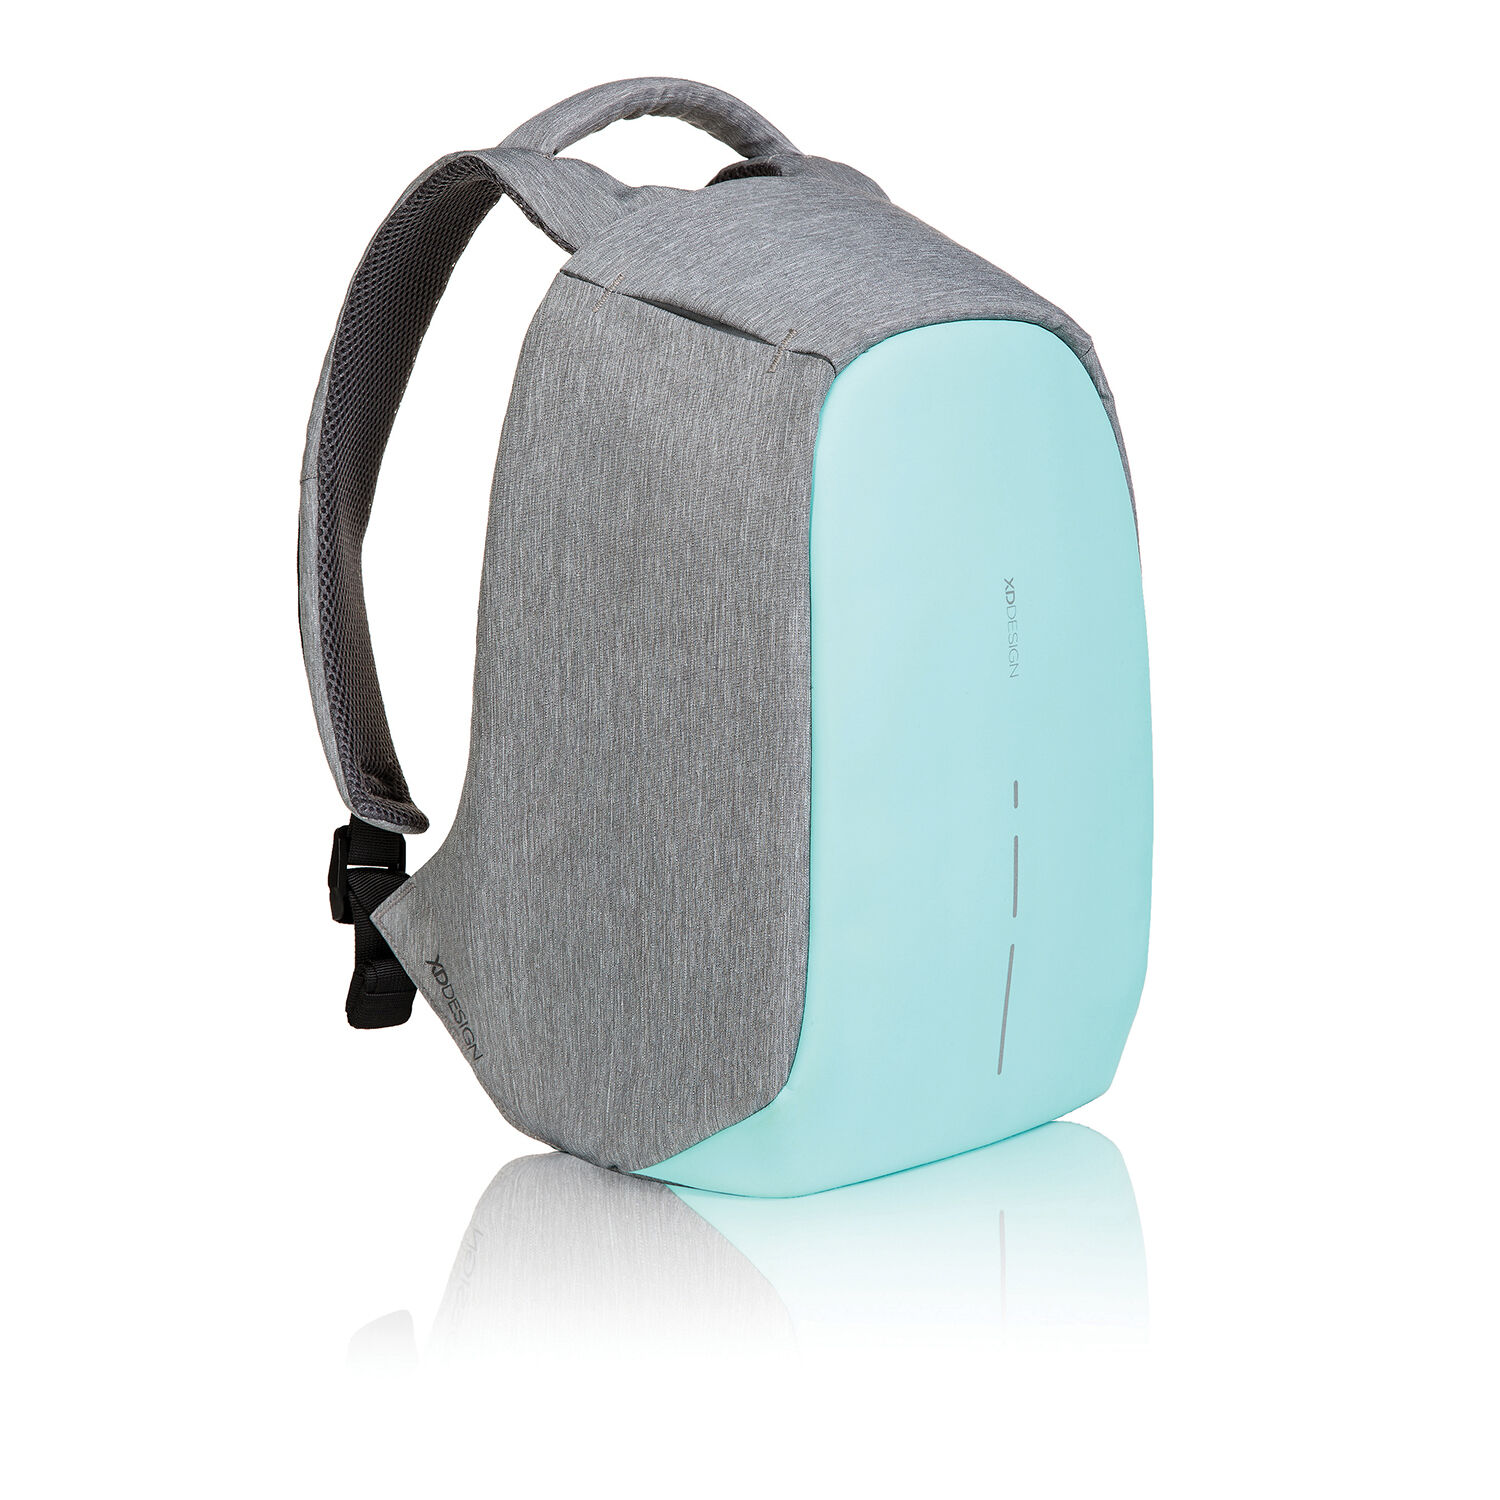 Bobby Anti-Theft Backpack Compact